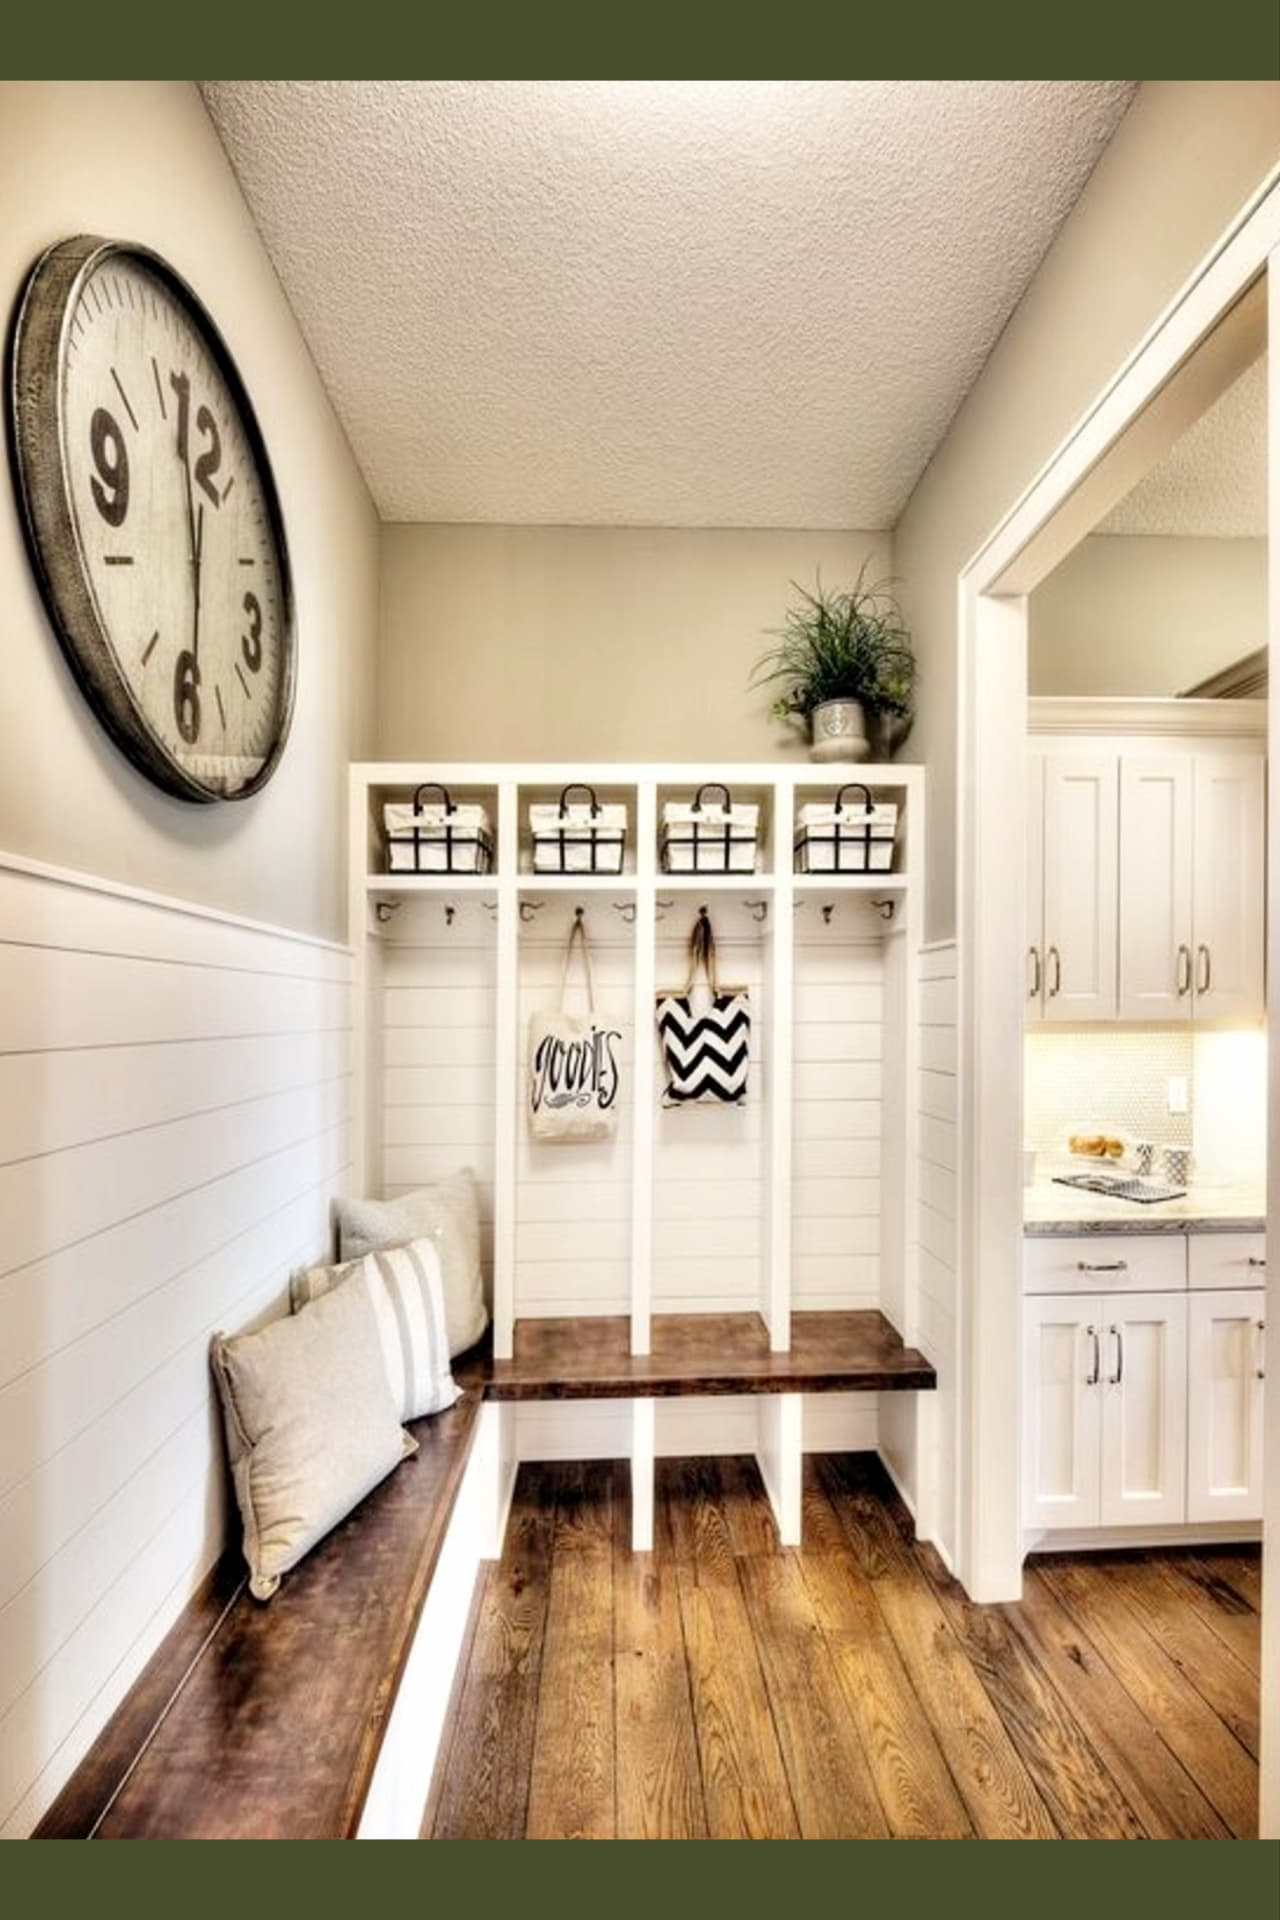 mudroom ideas - farmhouse mudroom ideas for a country style kitchen or entryway